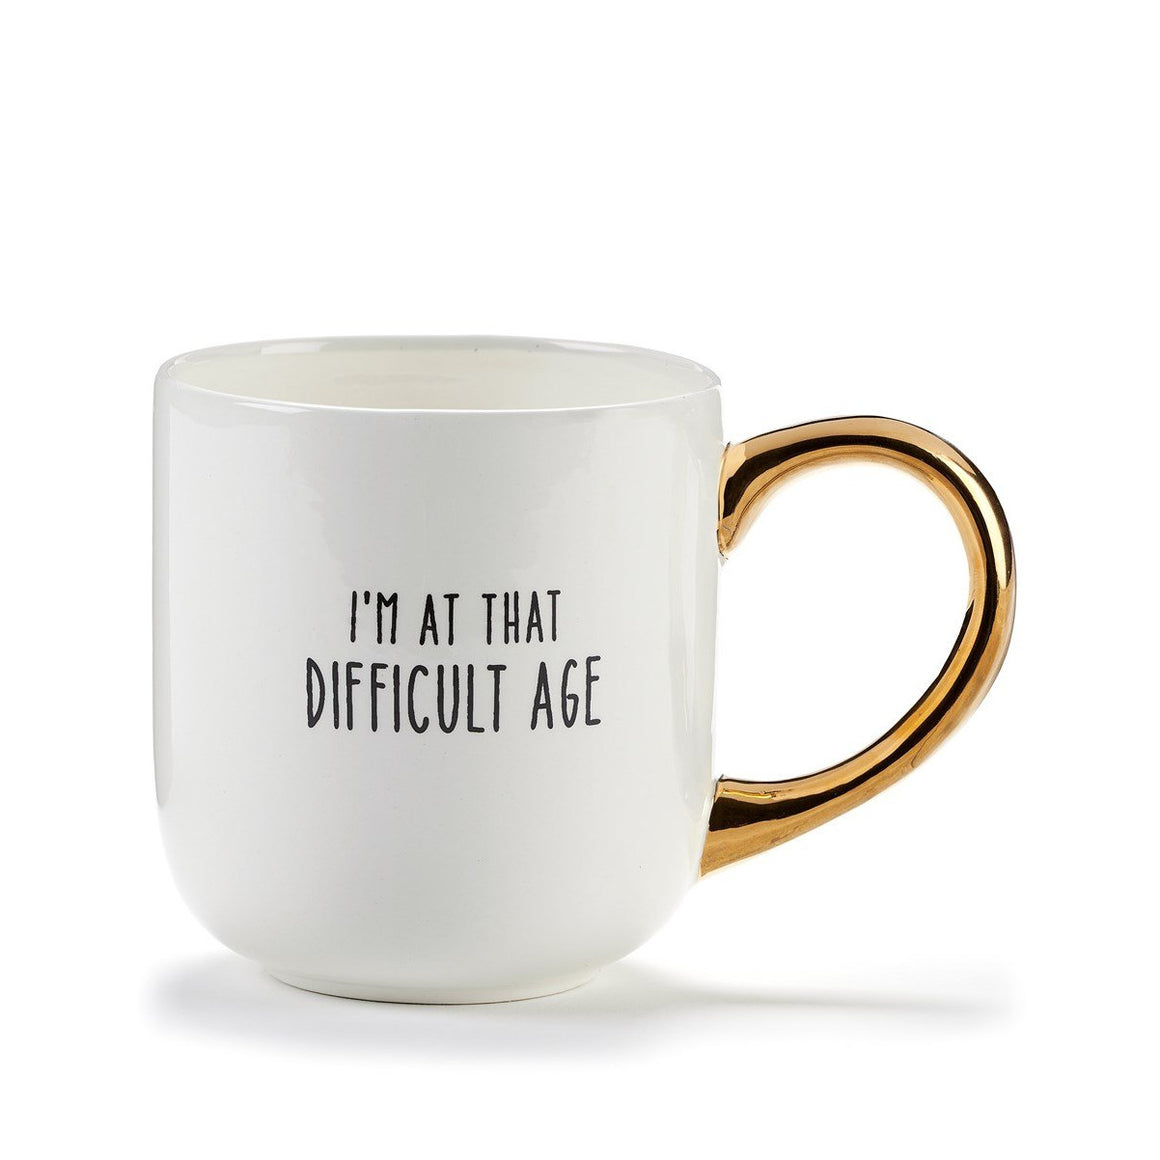 I'm At That Difficult Age - Mug